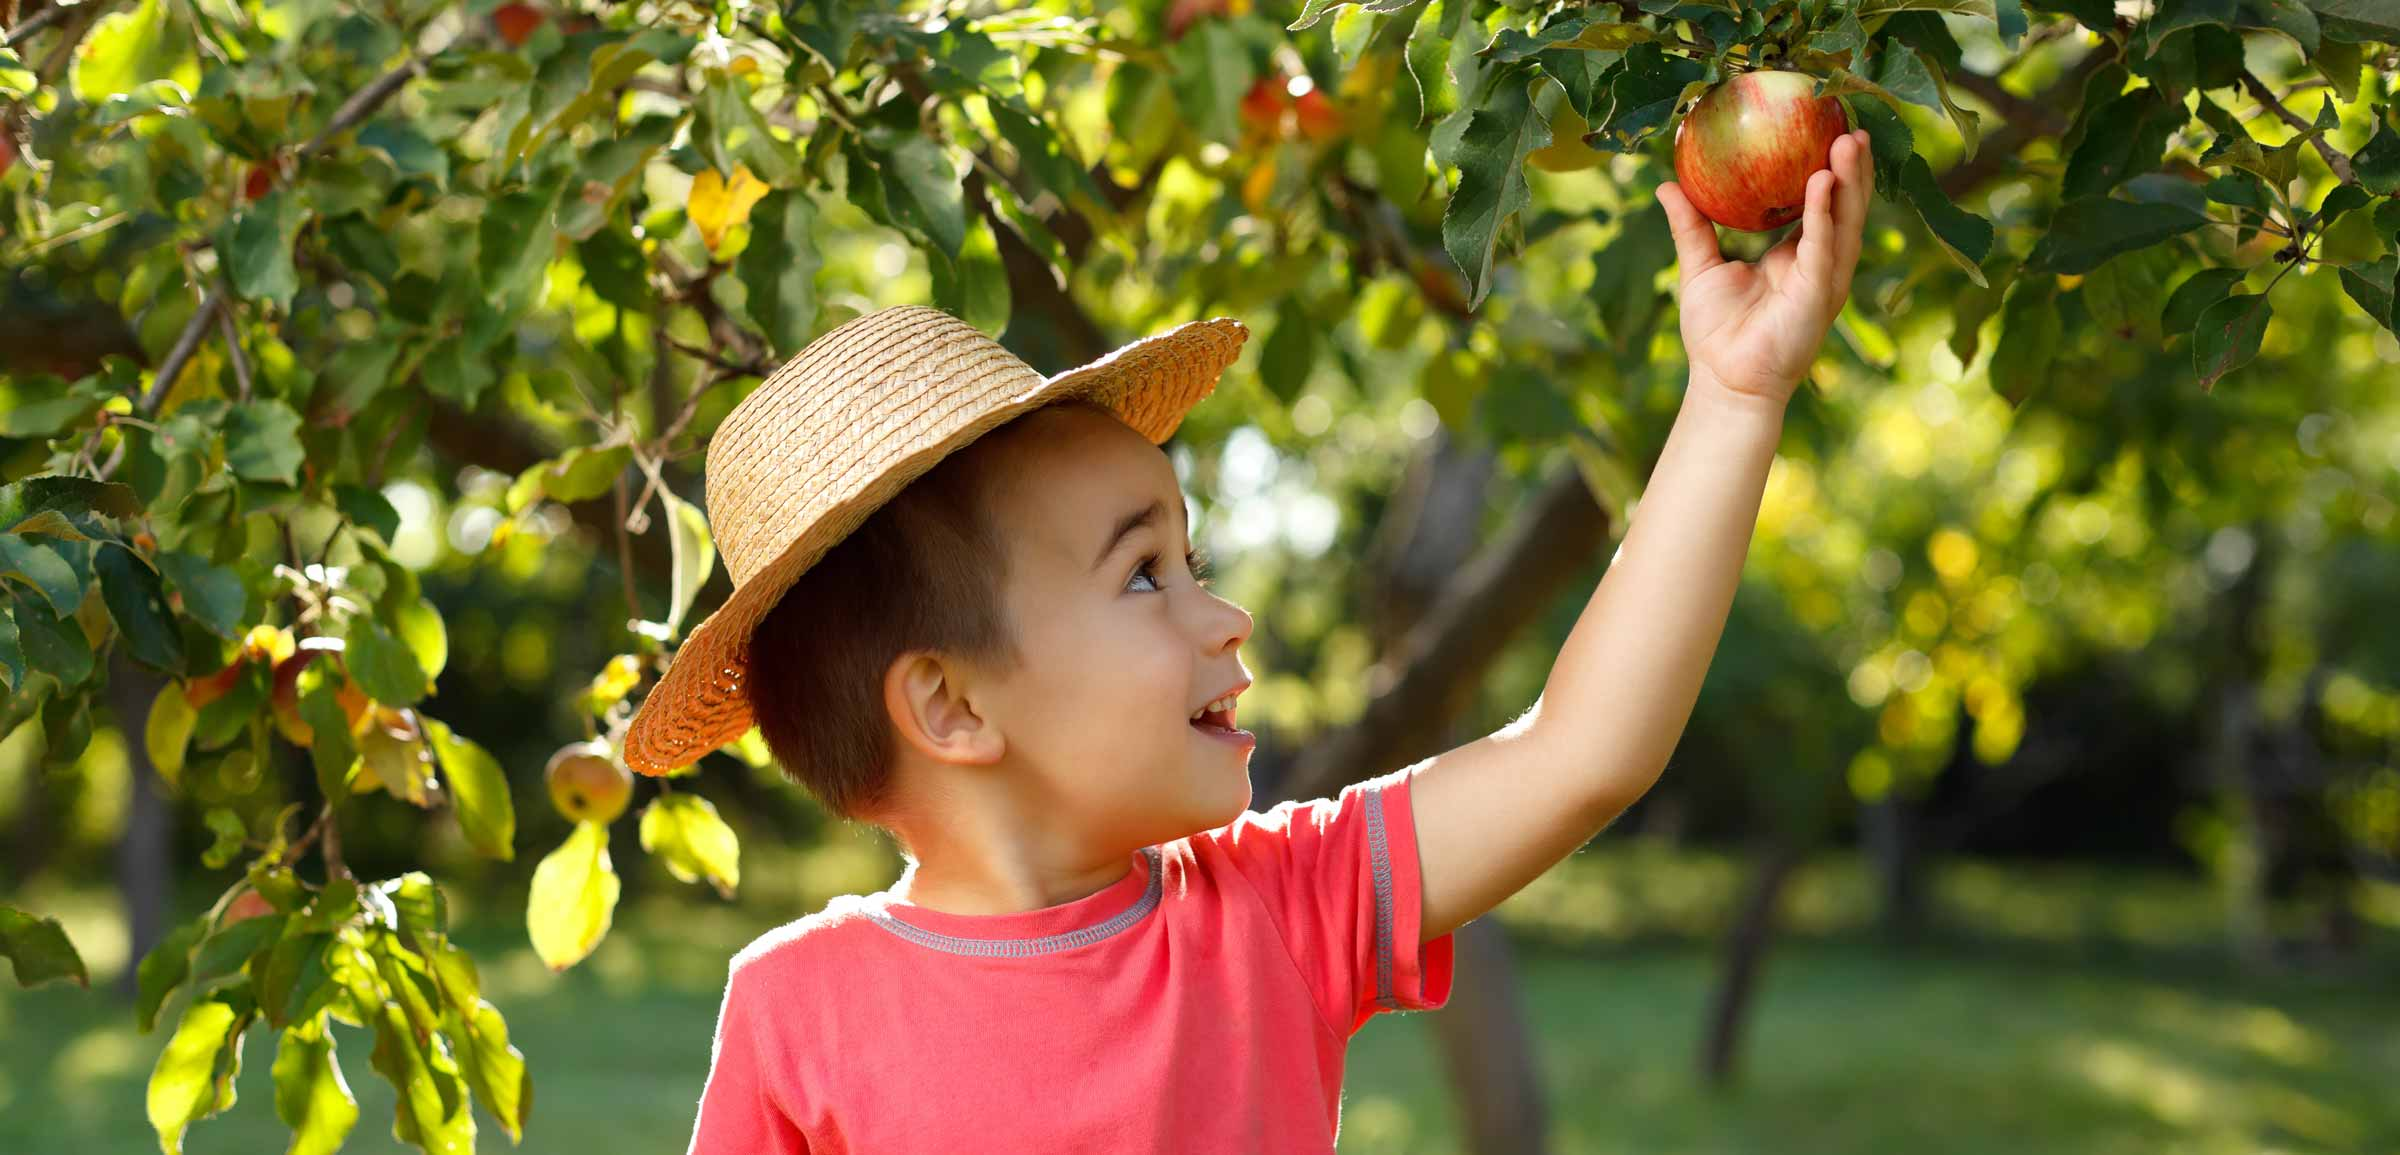 Boy picking an apple from an Apple Tree